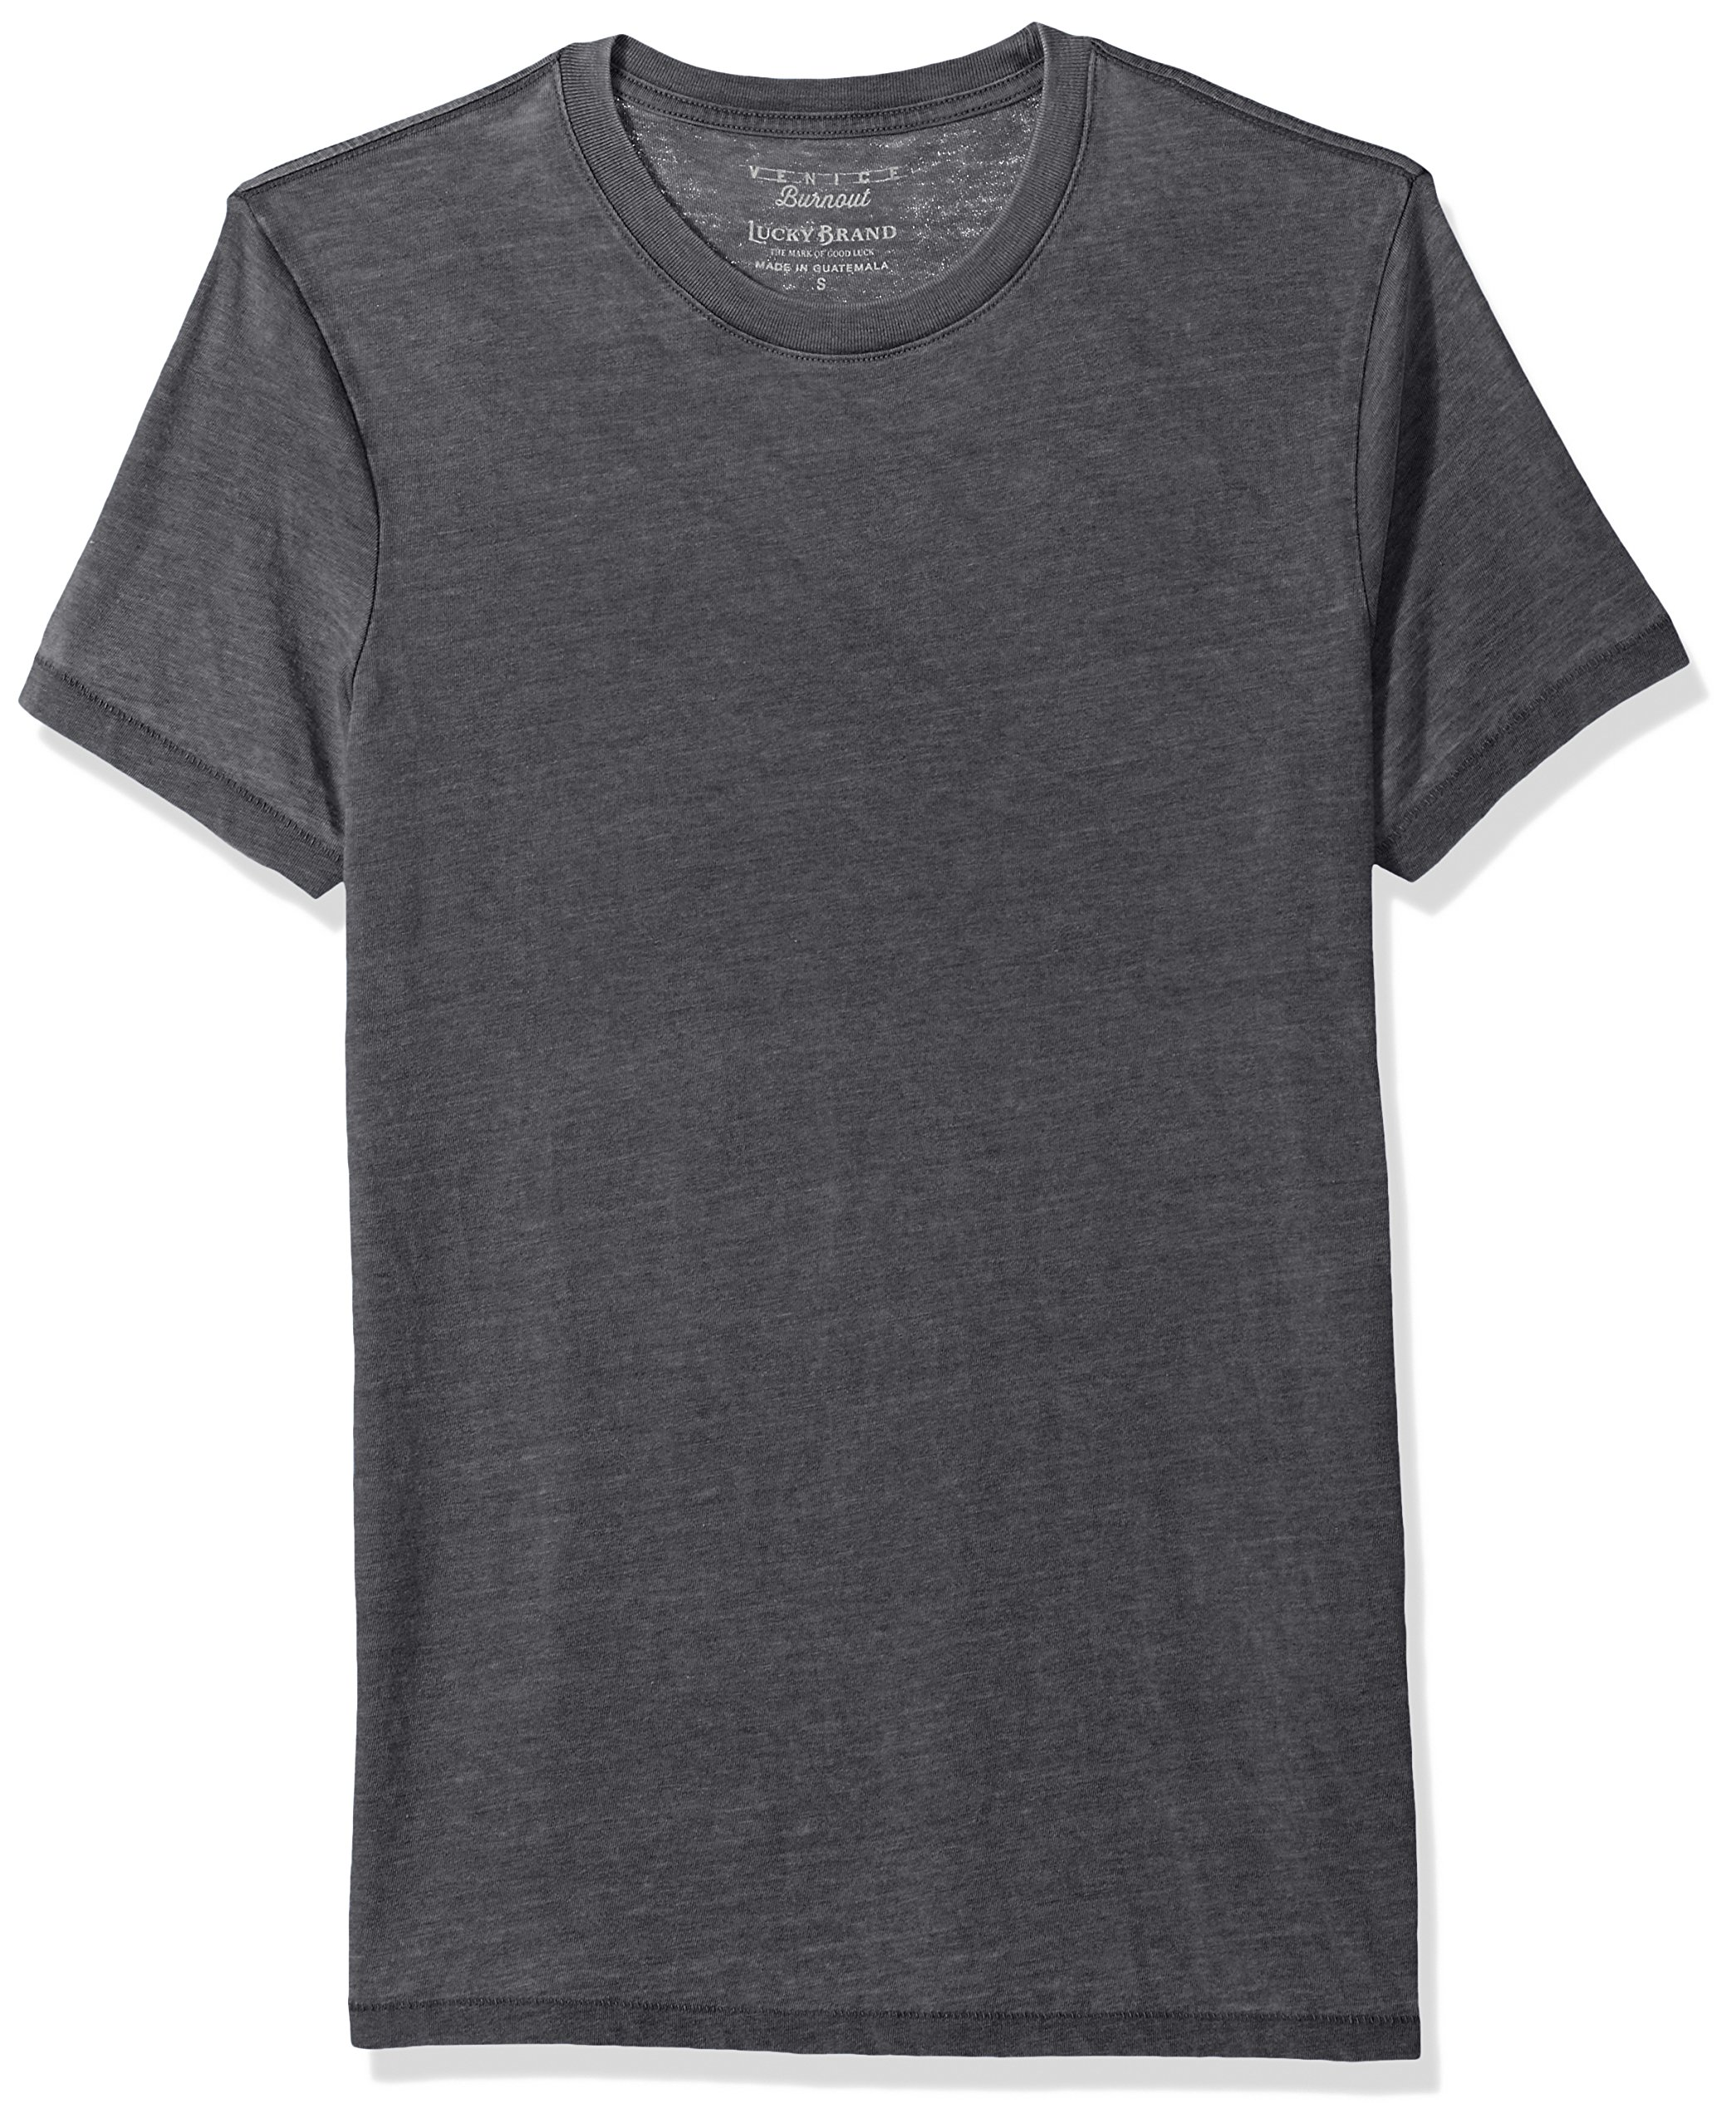 Lucky Brand Men's Venice Burnout Crew Neck Tee Shirt, Jet Black, M